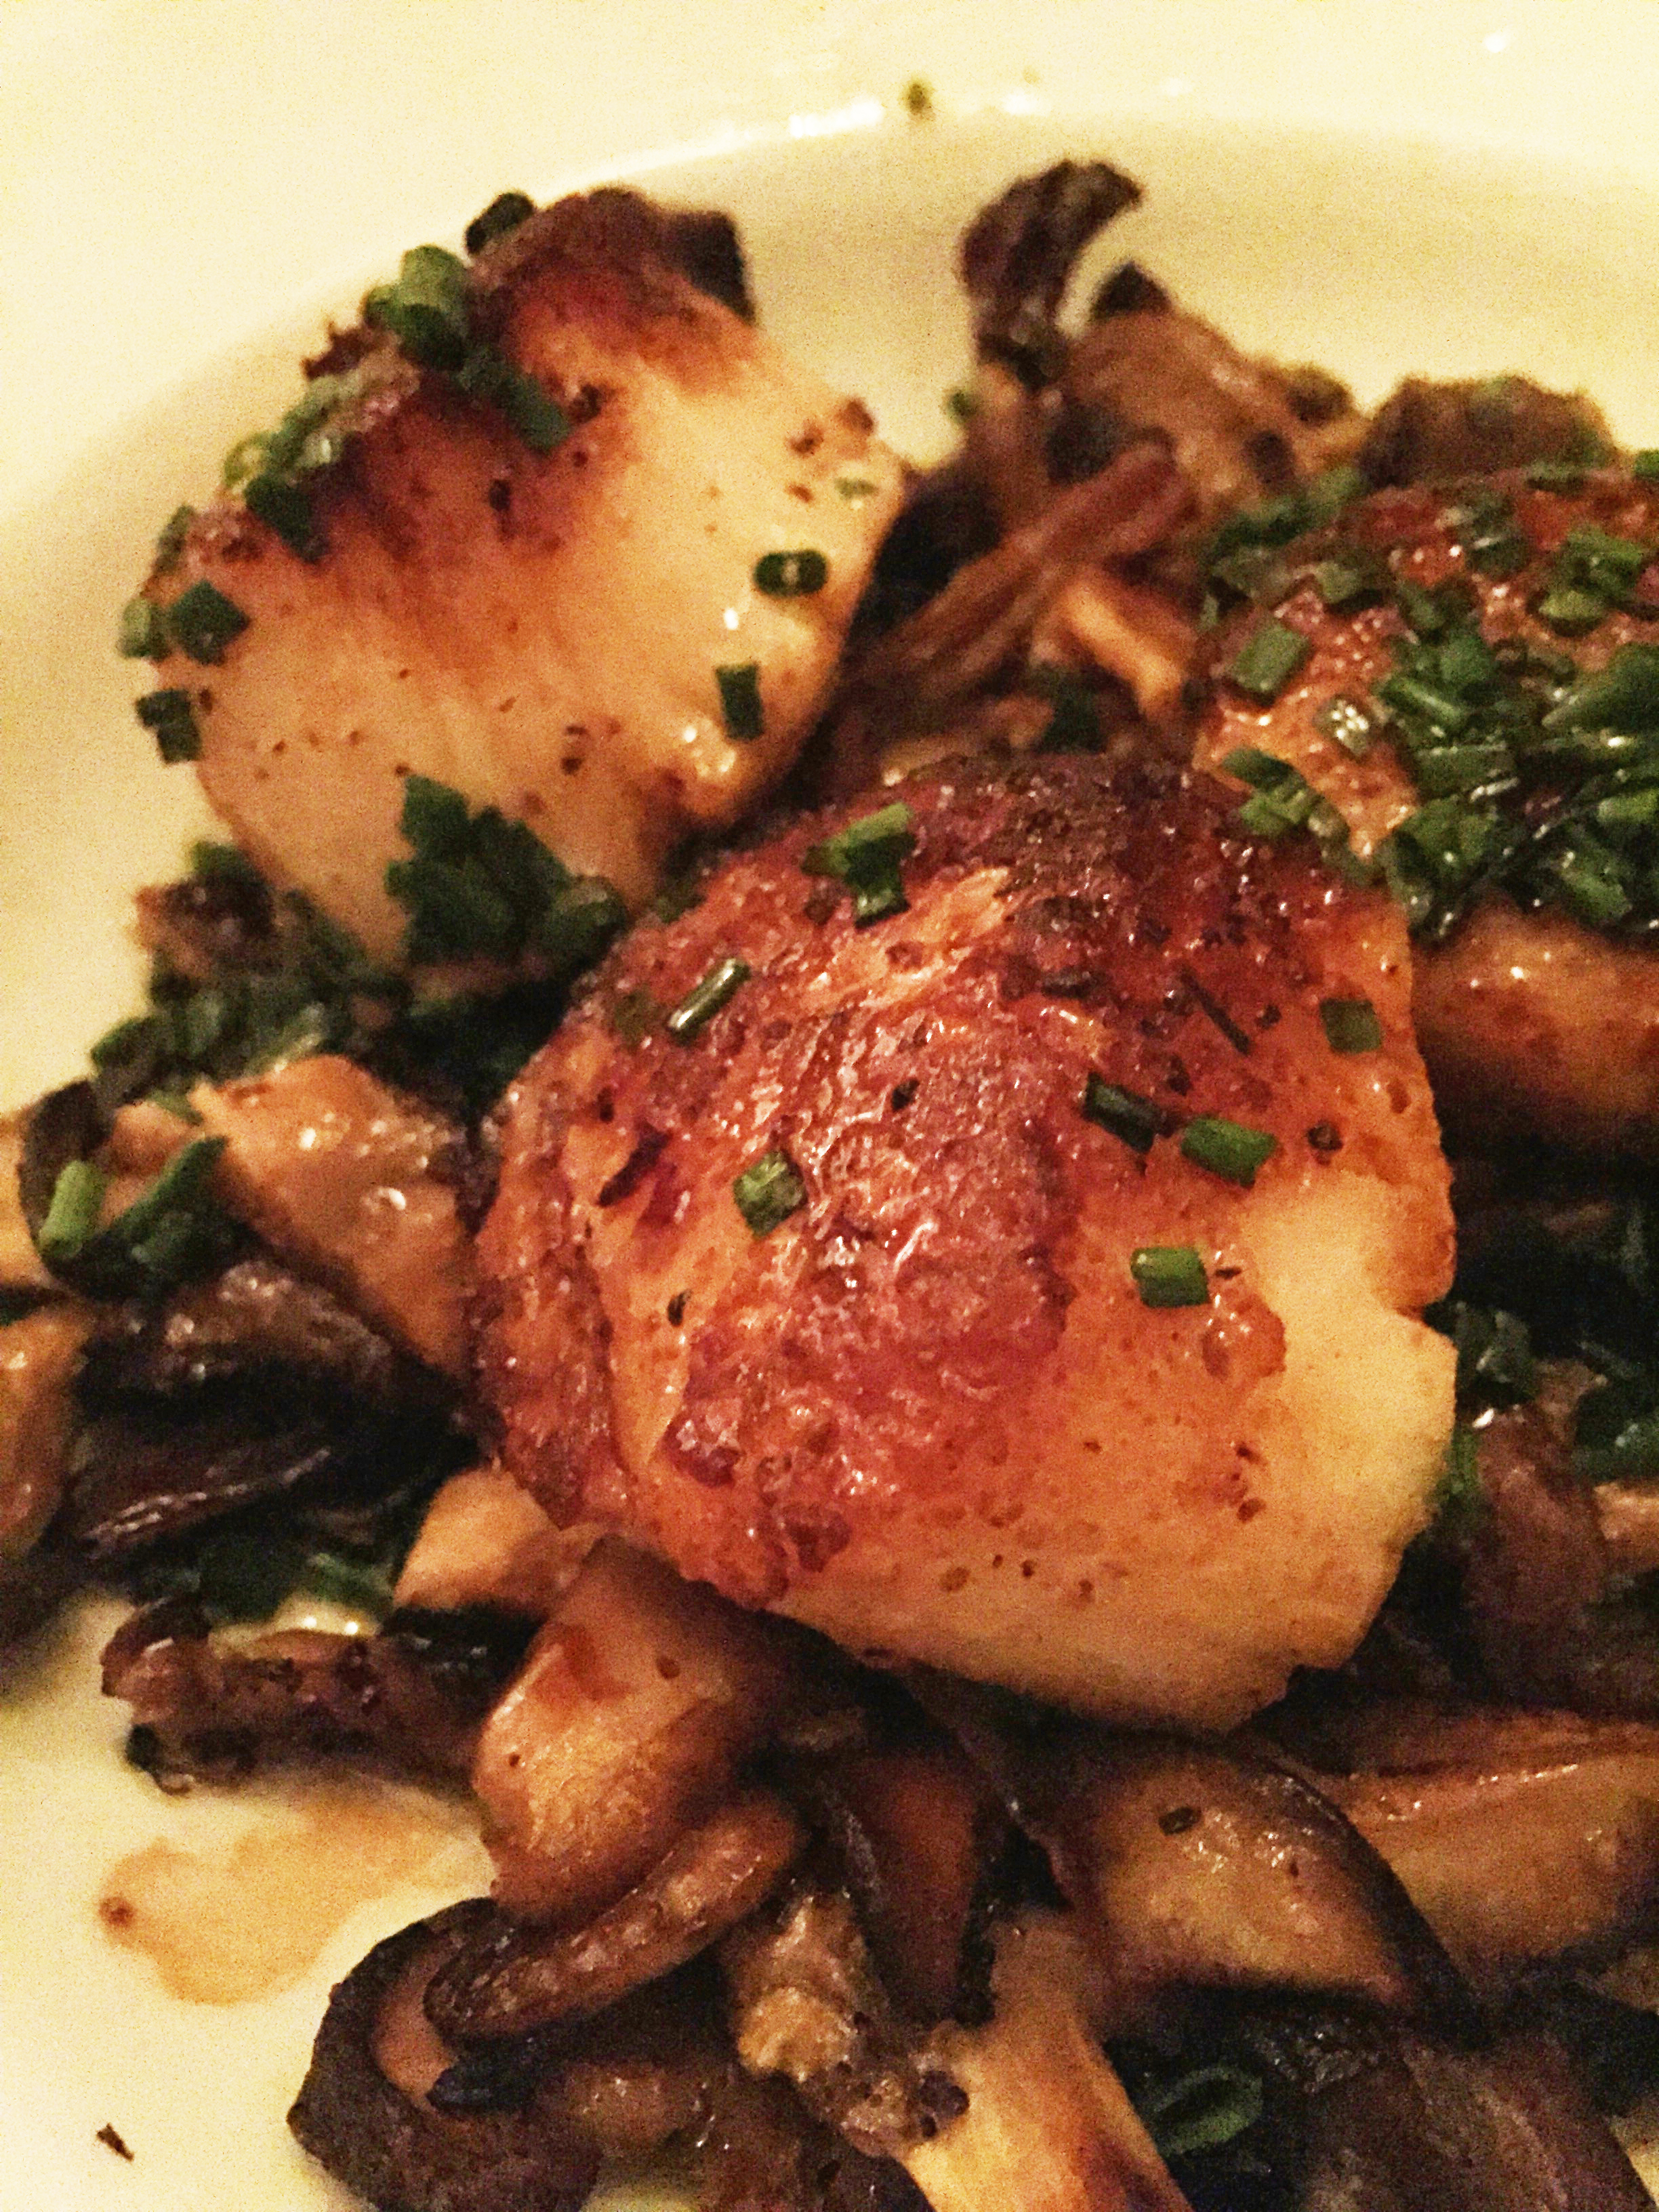 Sauteed Scallops, Mushrooms, Aged Balsamic Vinegar